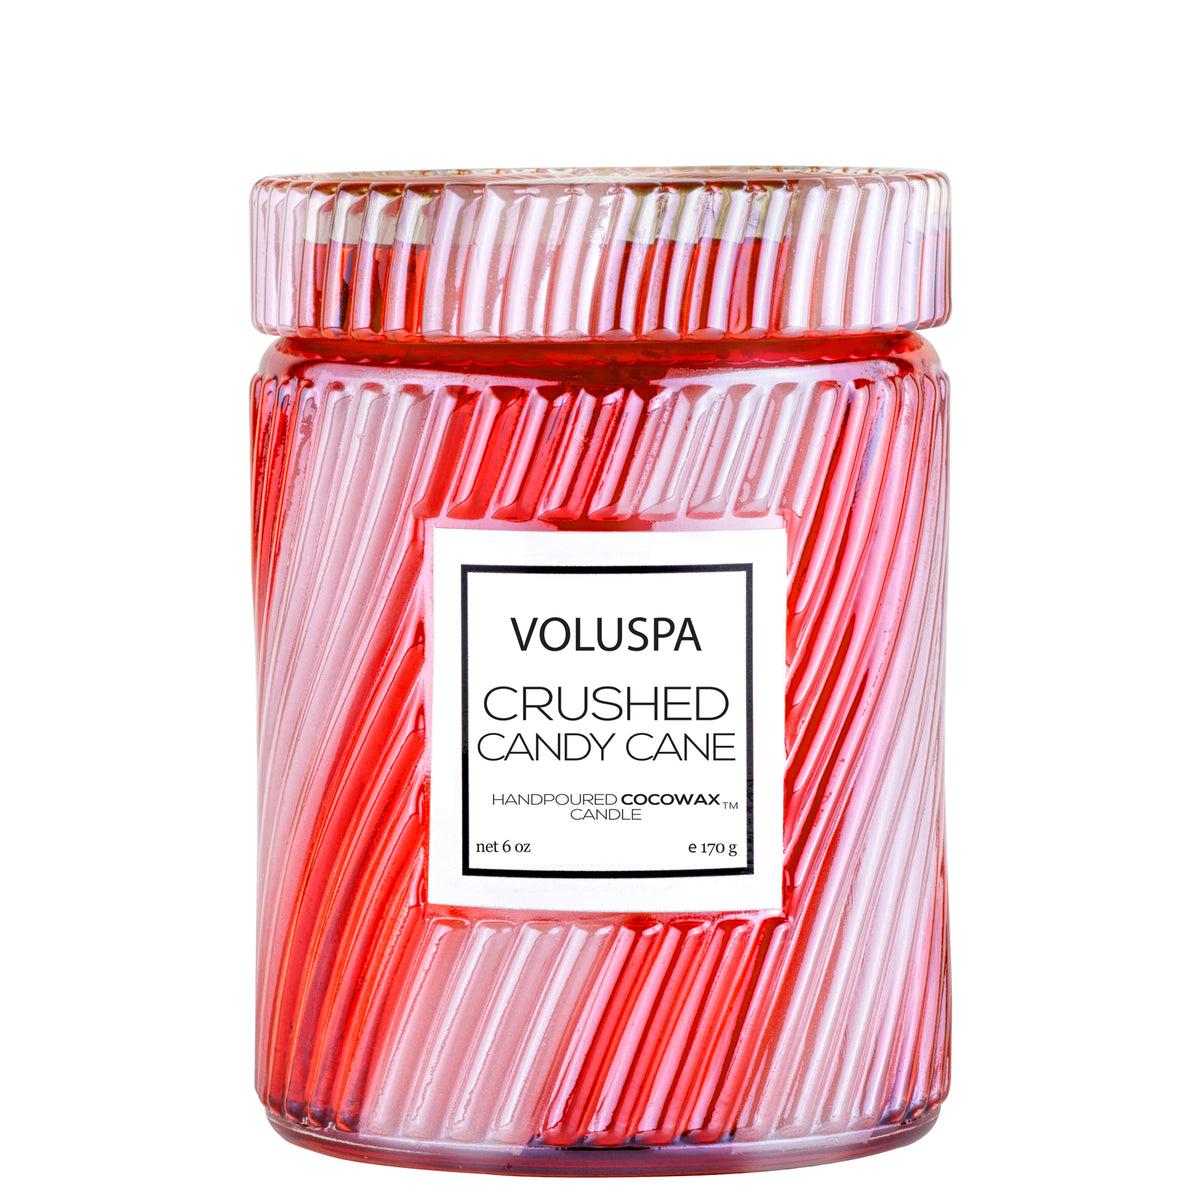 Crushed Candy Cane - Small Jar Candle - 1